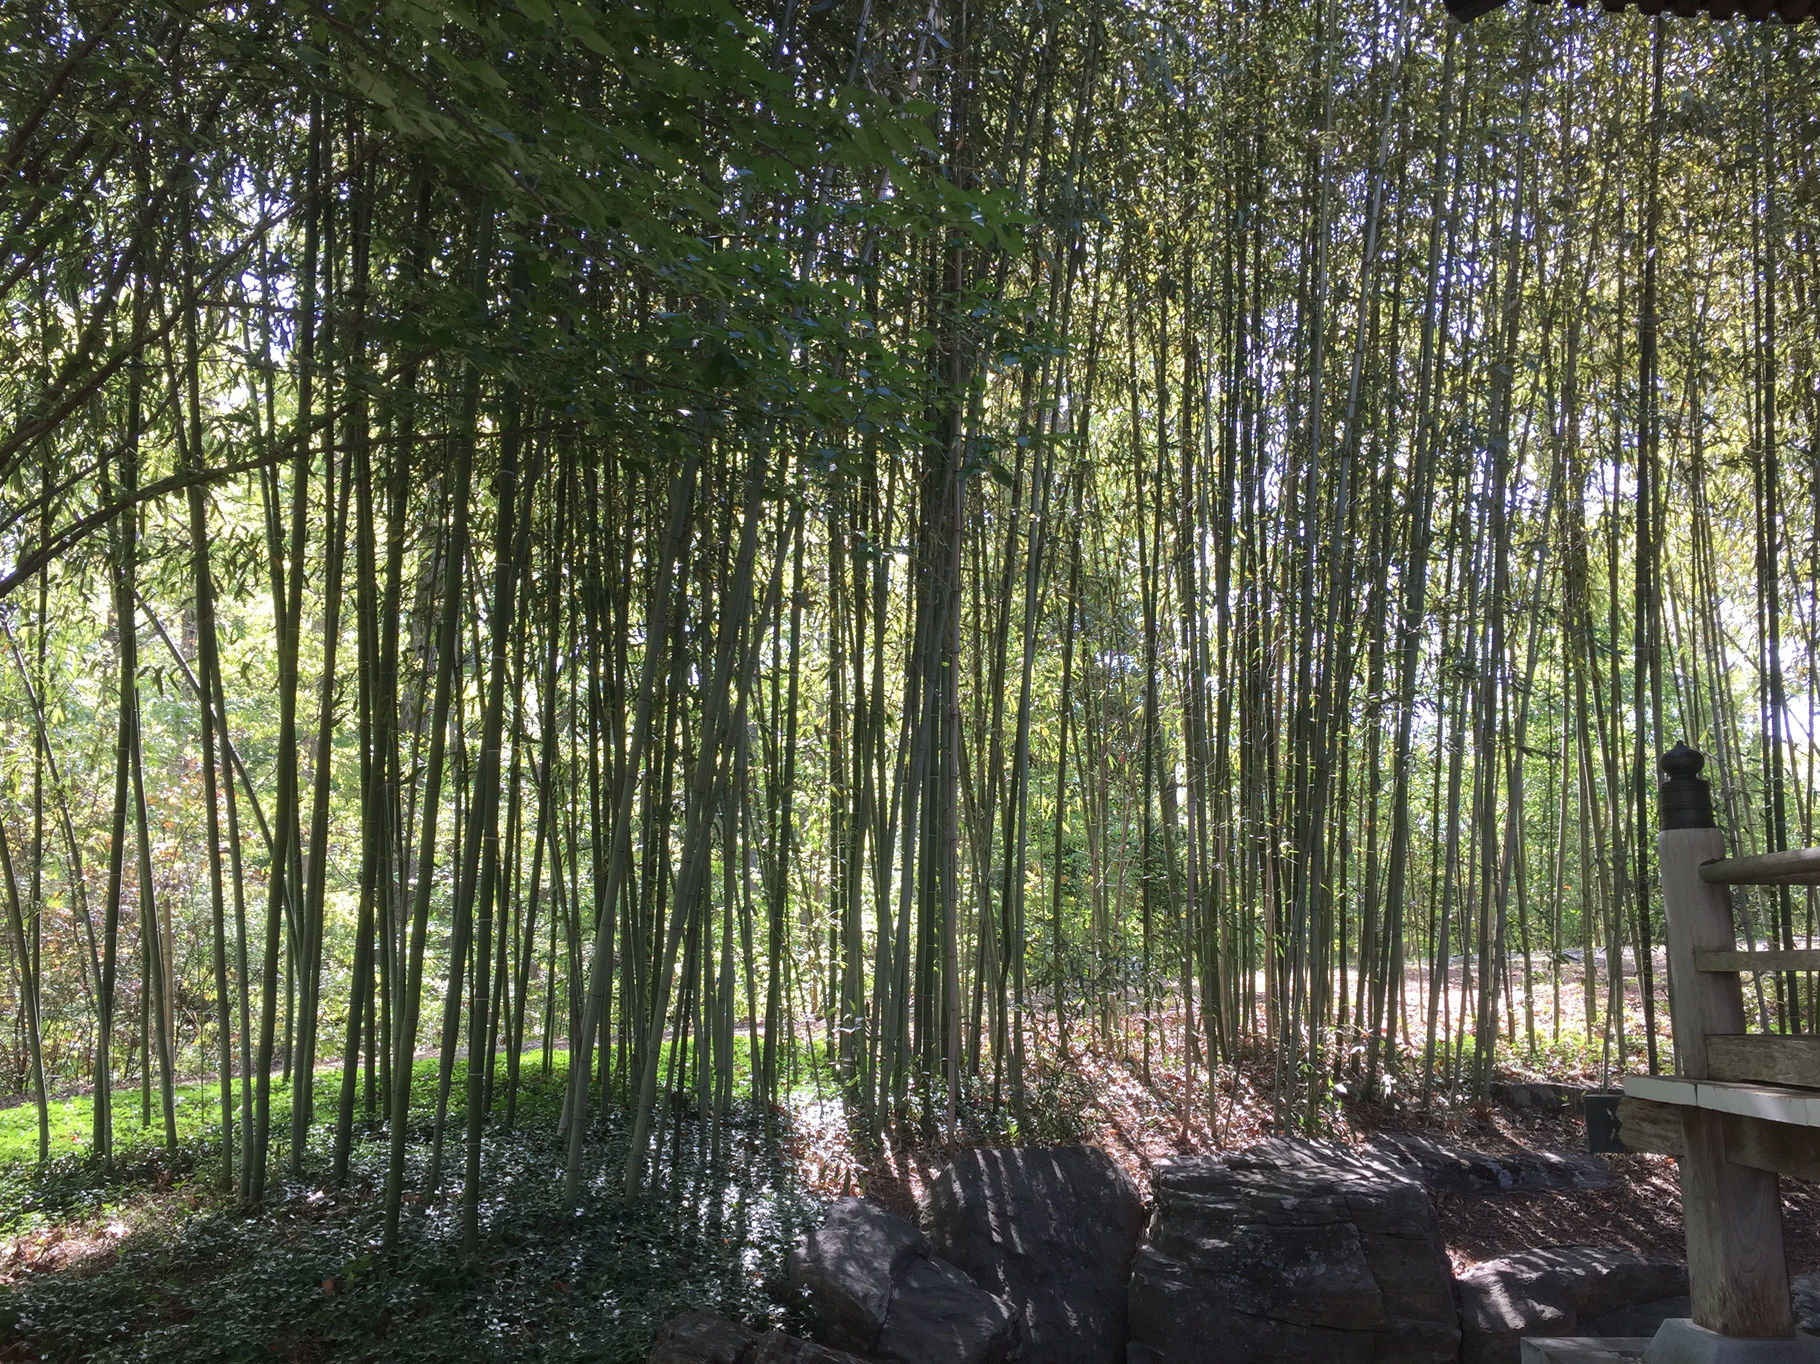 Bamboo growing at the Place of Peace